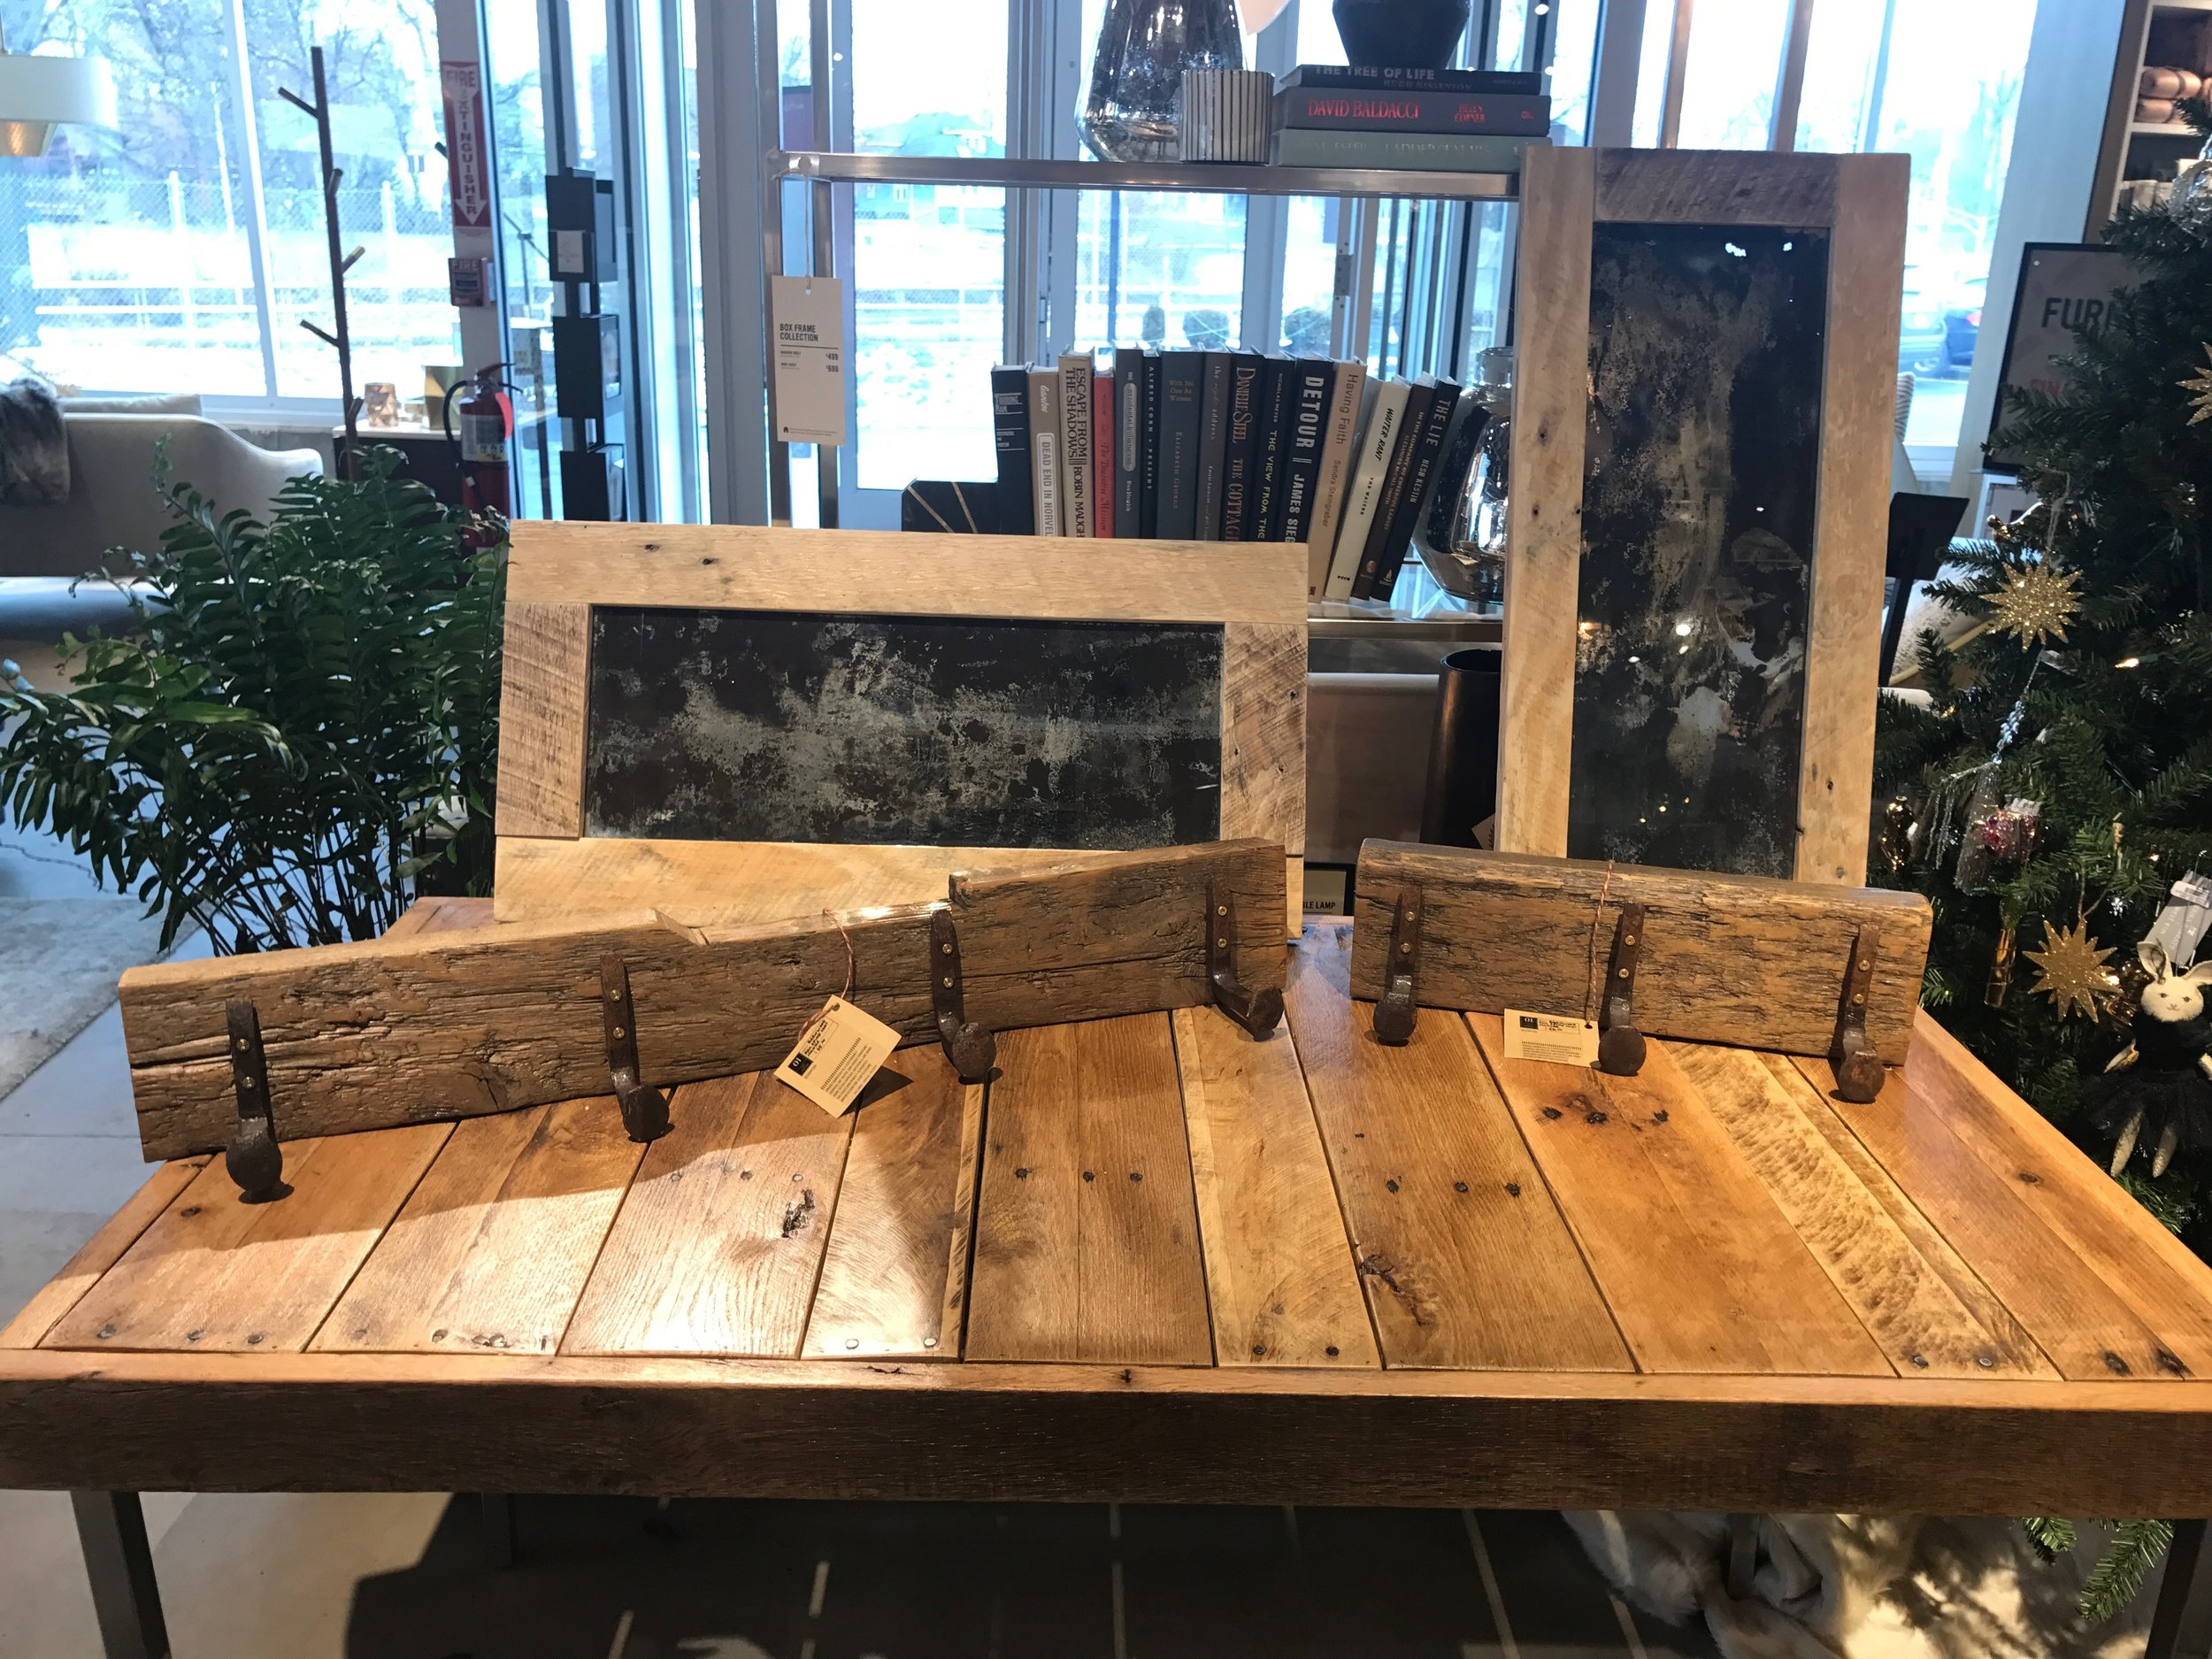 Reclaimed wood table on salvaged chrome legs, railroad spike coat racks and vintage style mirrors with rustic reclaimed wood frames.